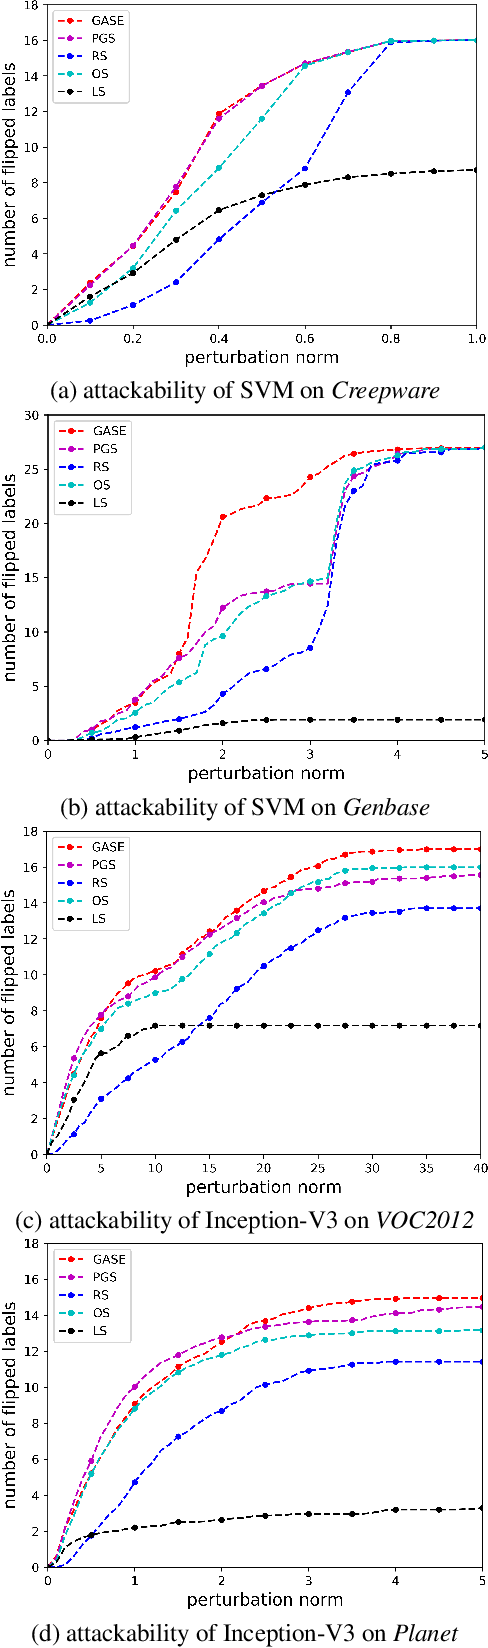 Figure 2 for Characterizing the Evasion Attackability of Multi-label Classifiers